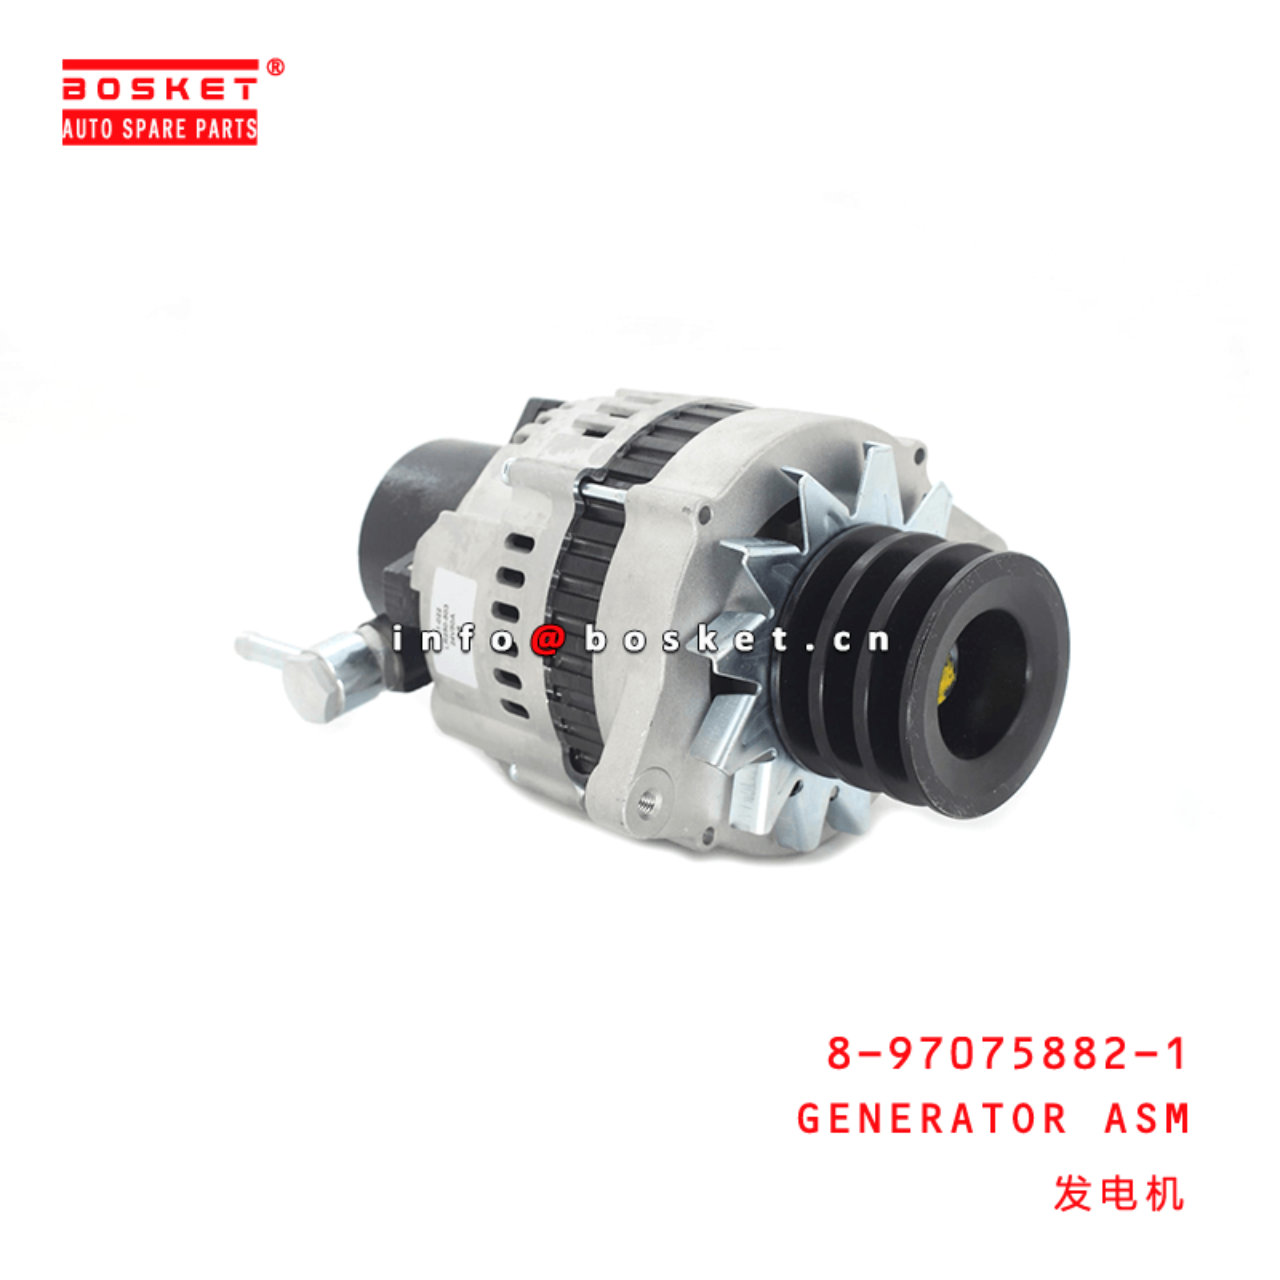 8-97075882-1 Generator Assembly 8970758821 Suitable for ISUZU NPR66 4HF1